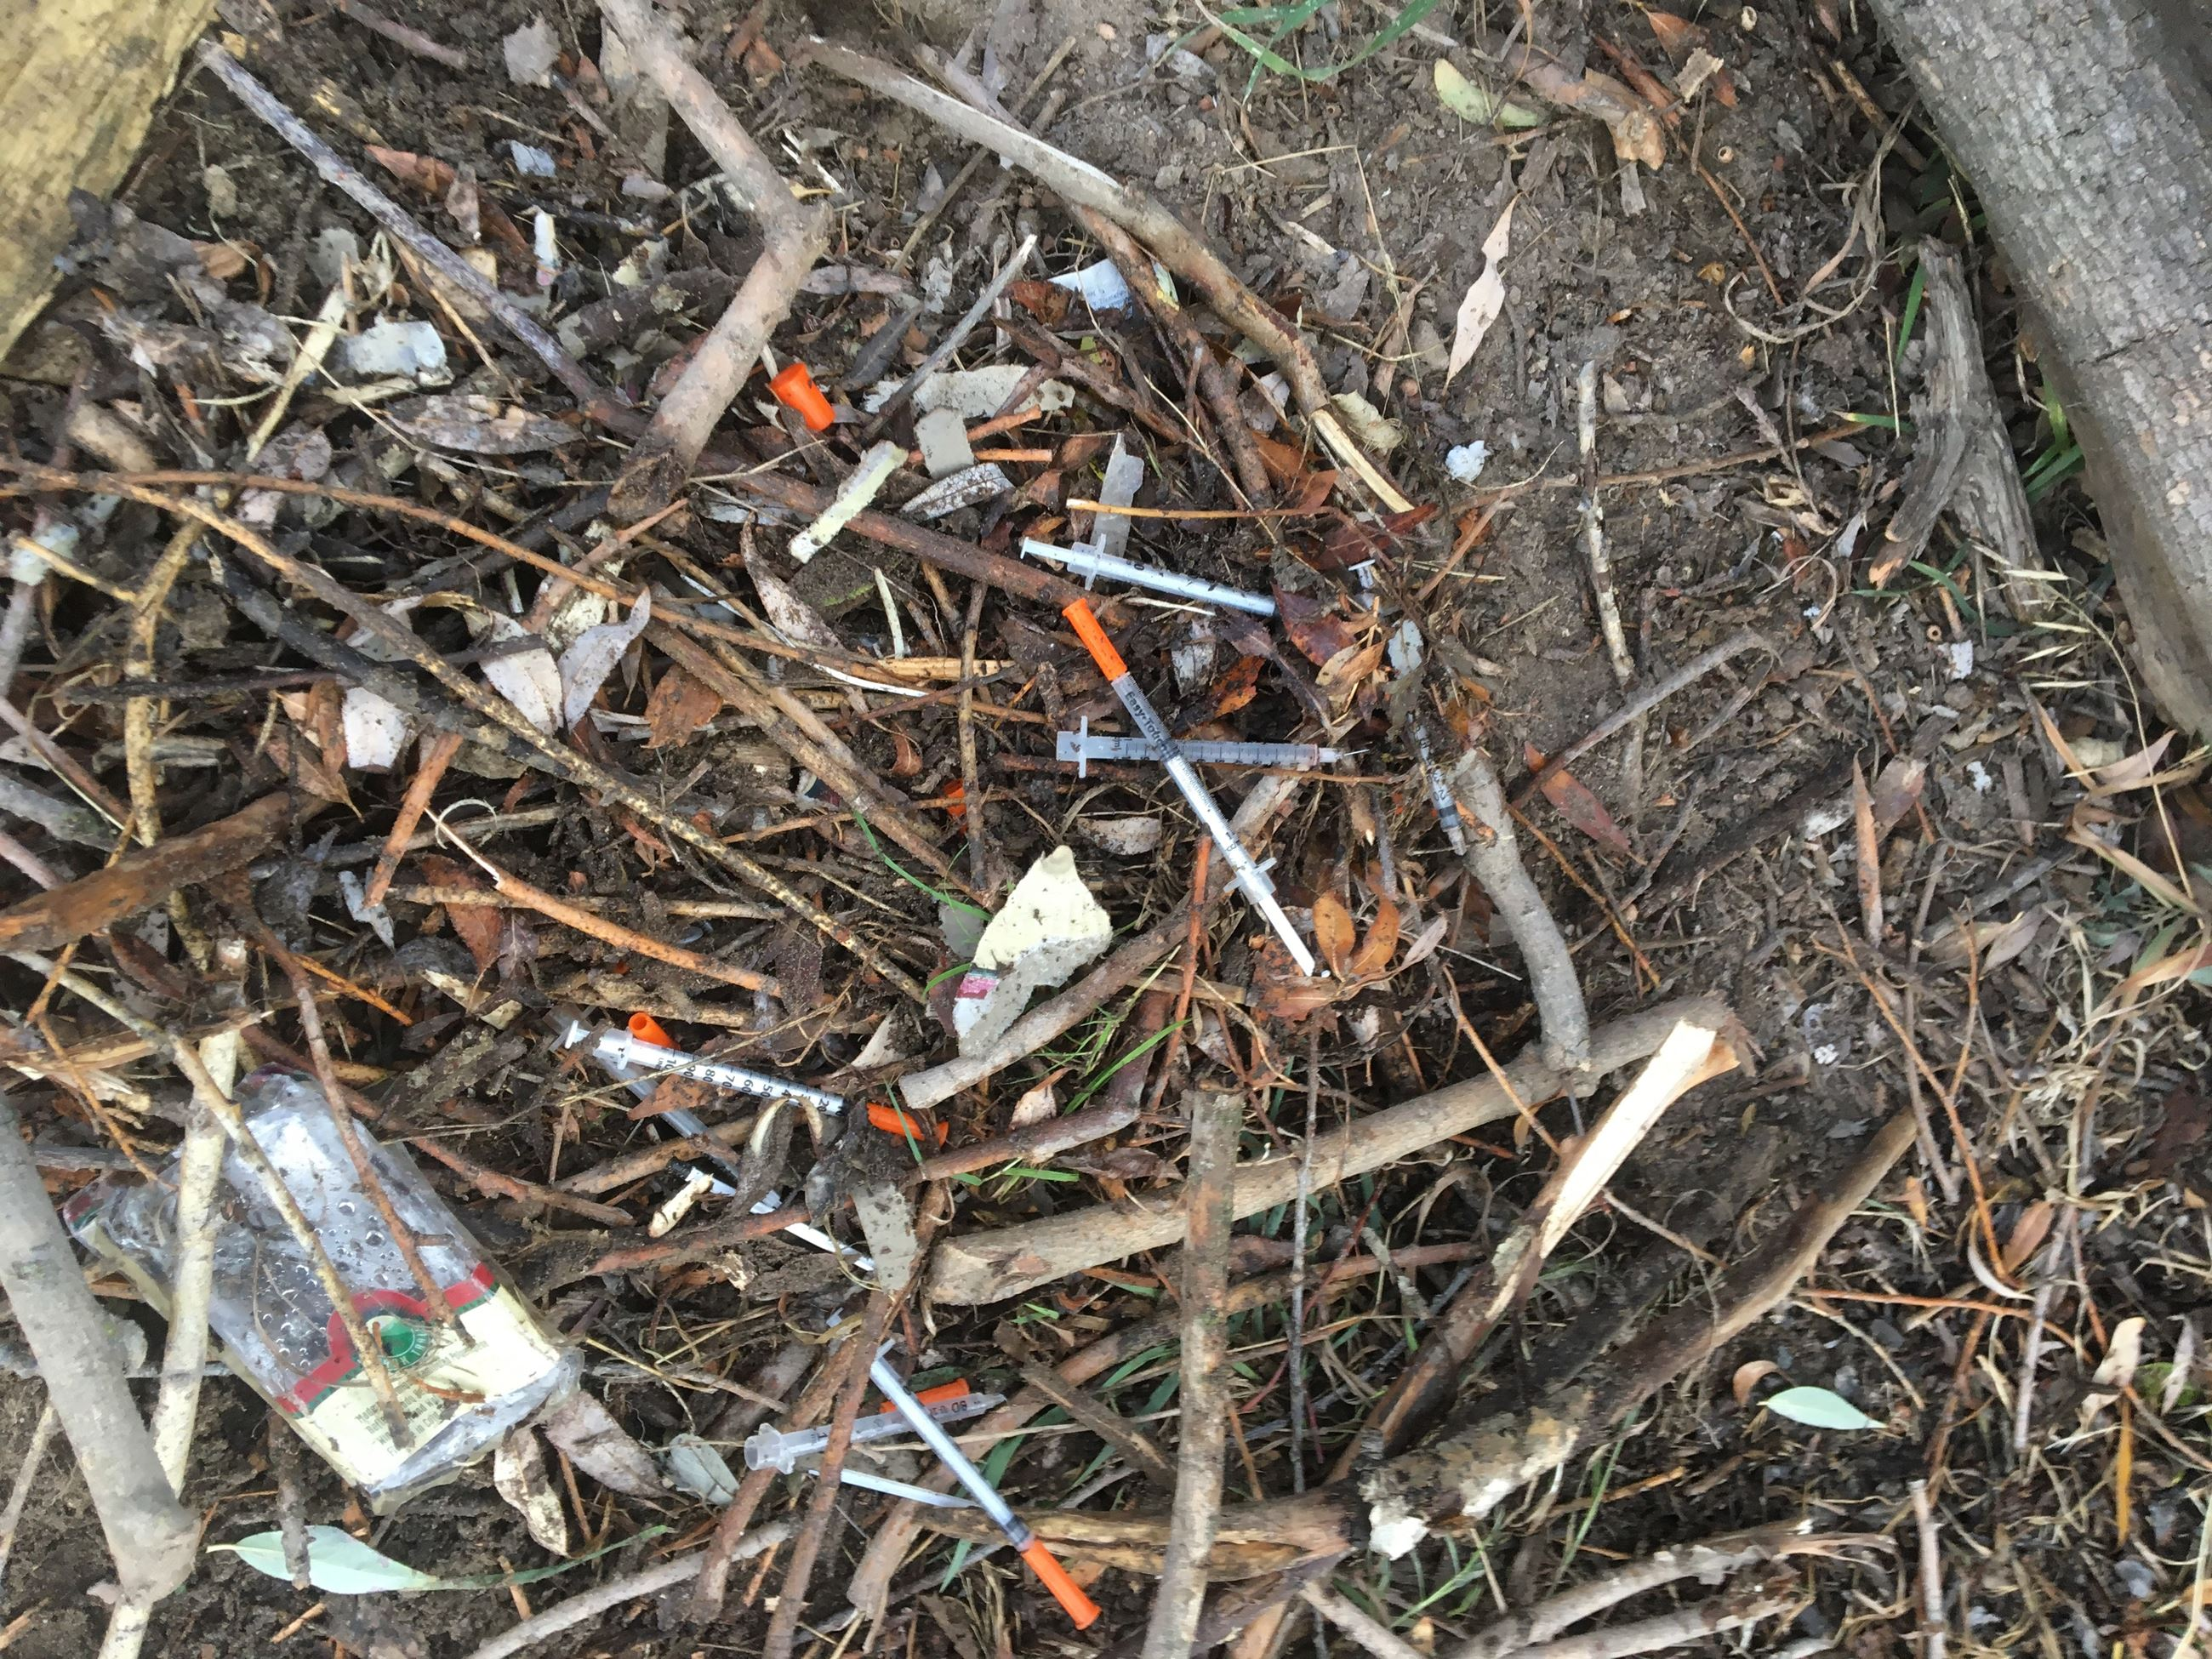 Image taken near the Clark Fork River Trail System, showing syringes laying on the ground where stor